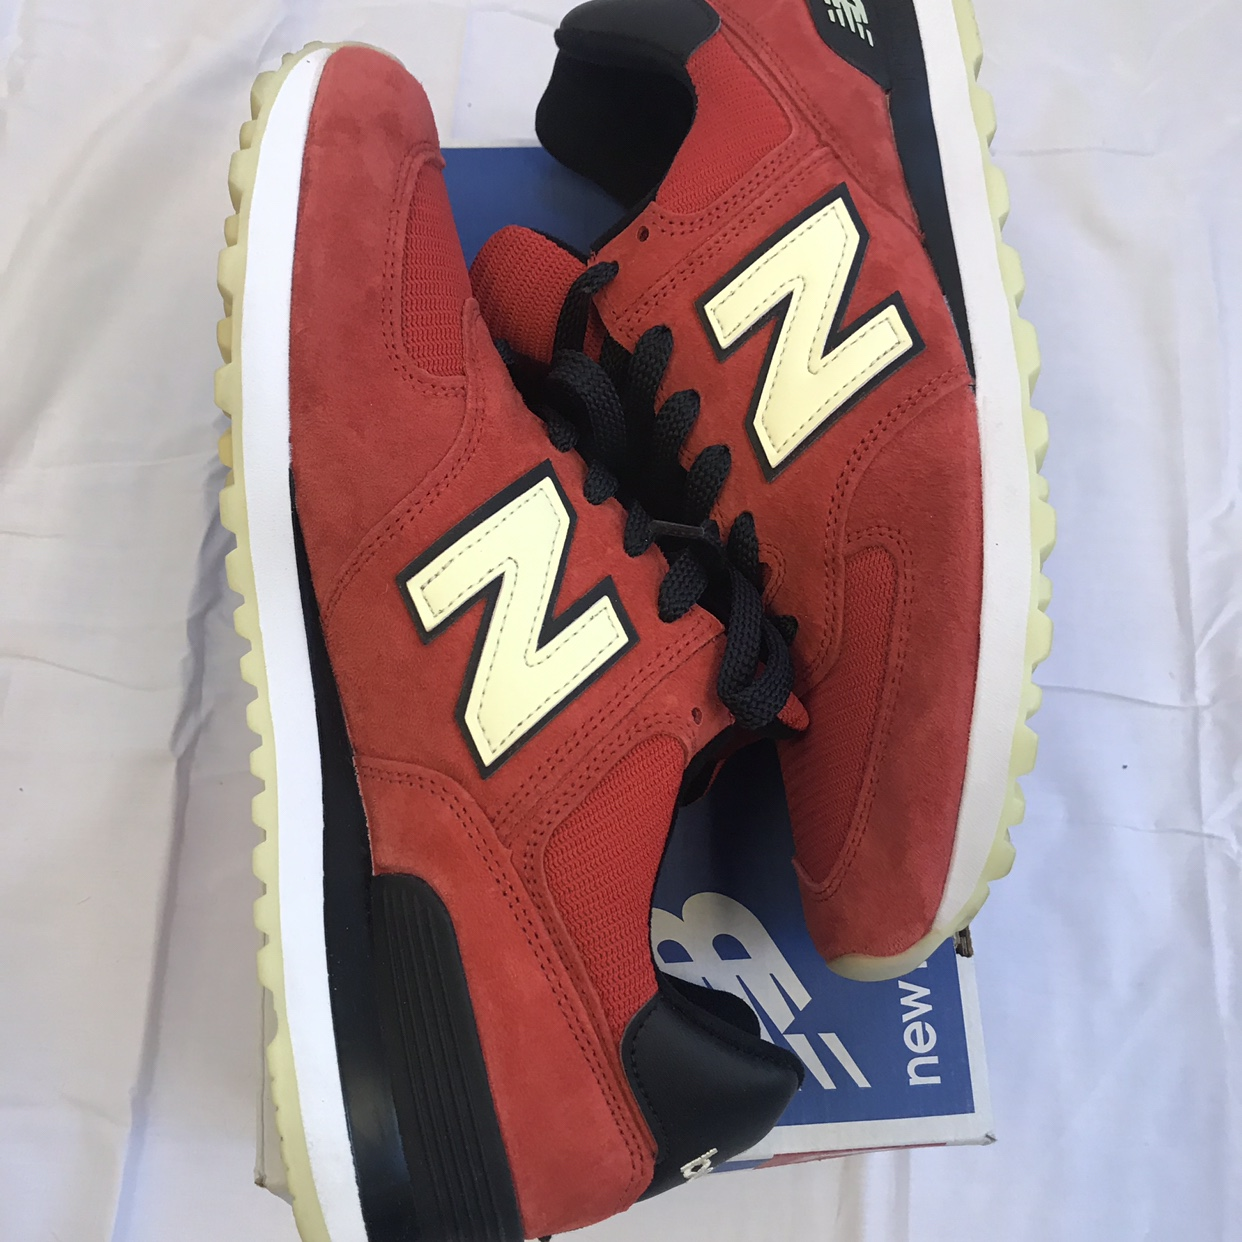 Made in the USA New Balance 574 with glow in the Depop